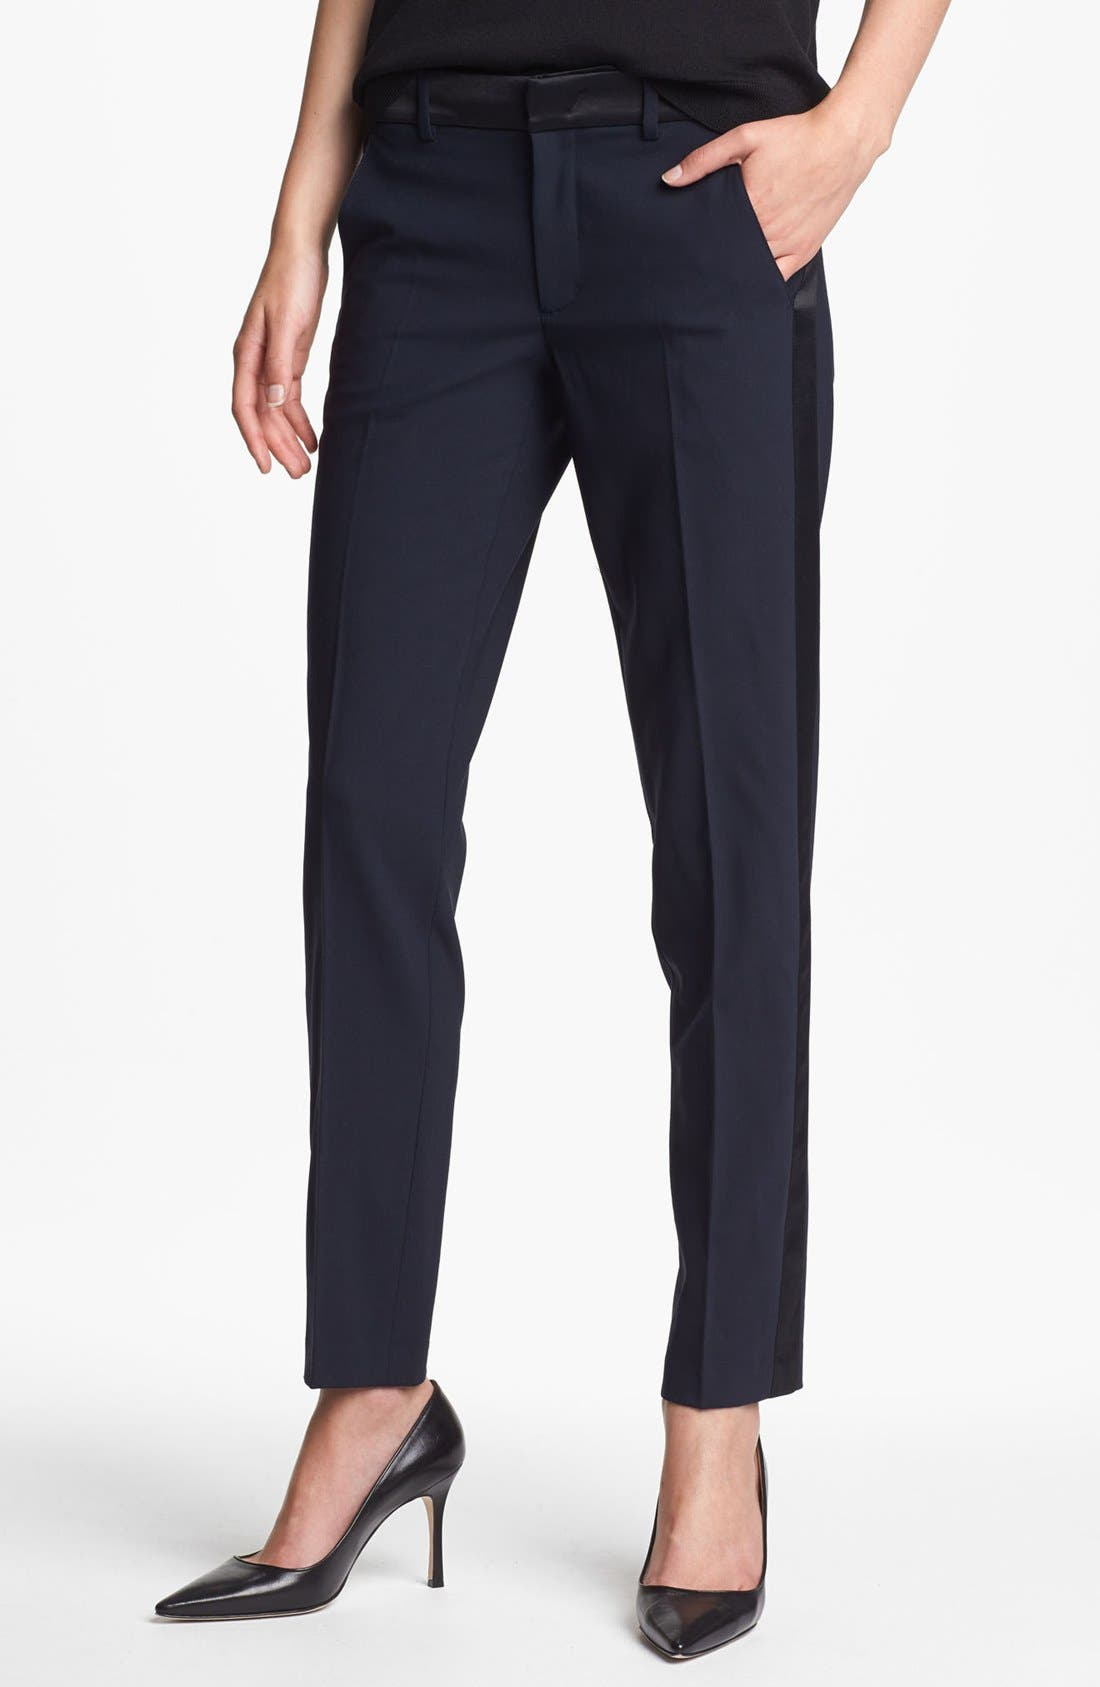 Main Image - Vince 'Strapping' Stretch Wool Tuxedo Pants